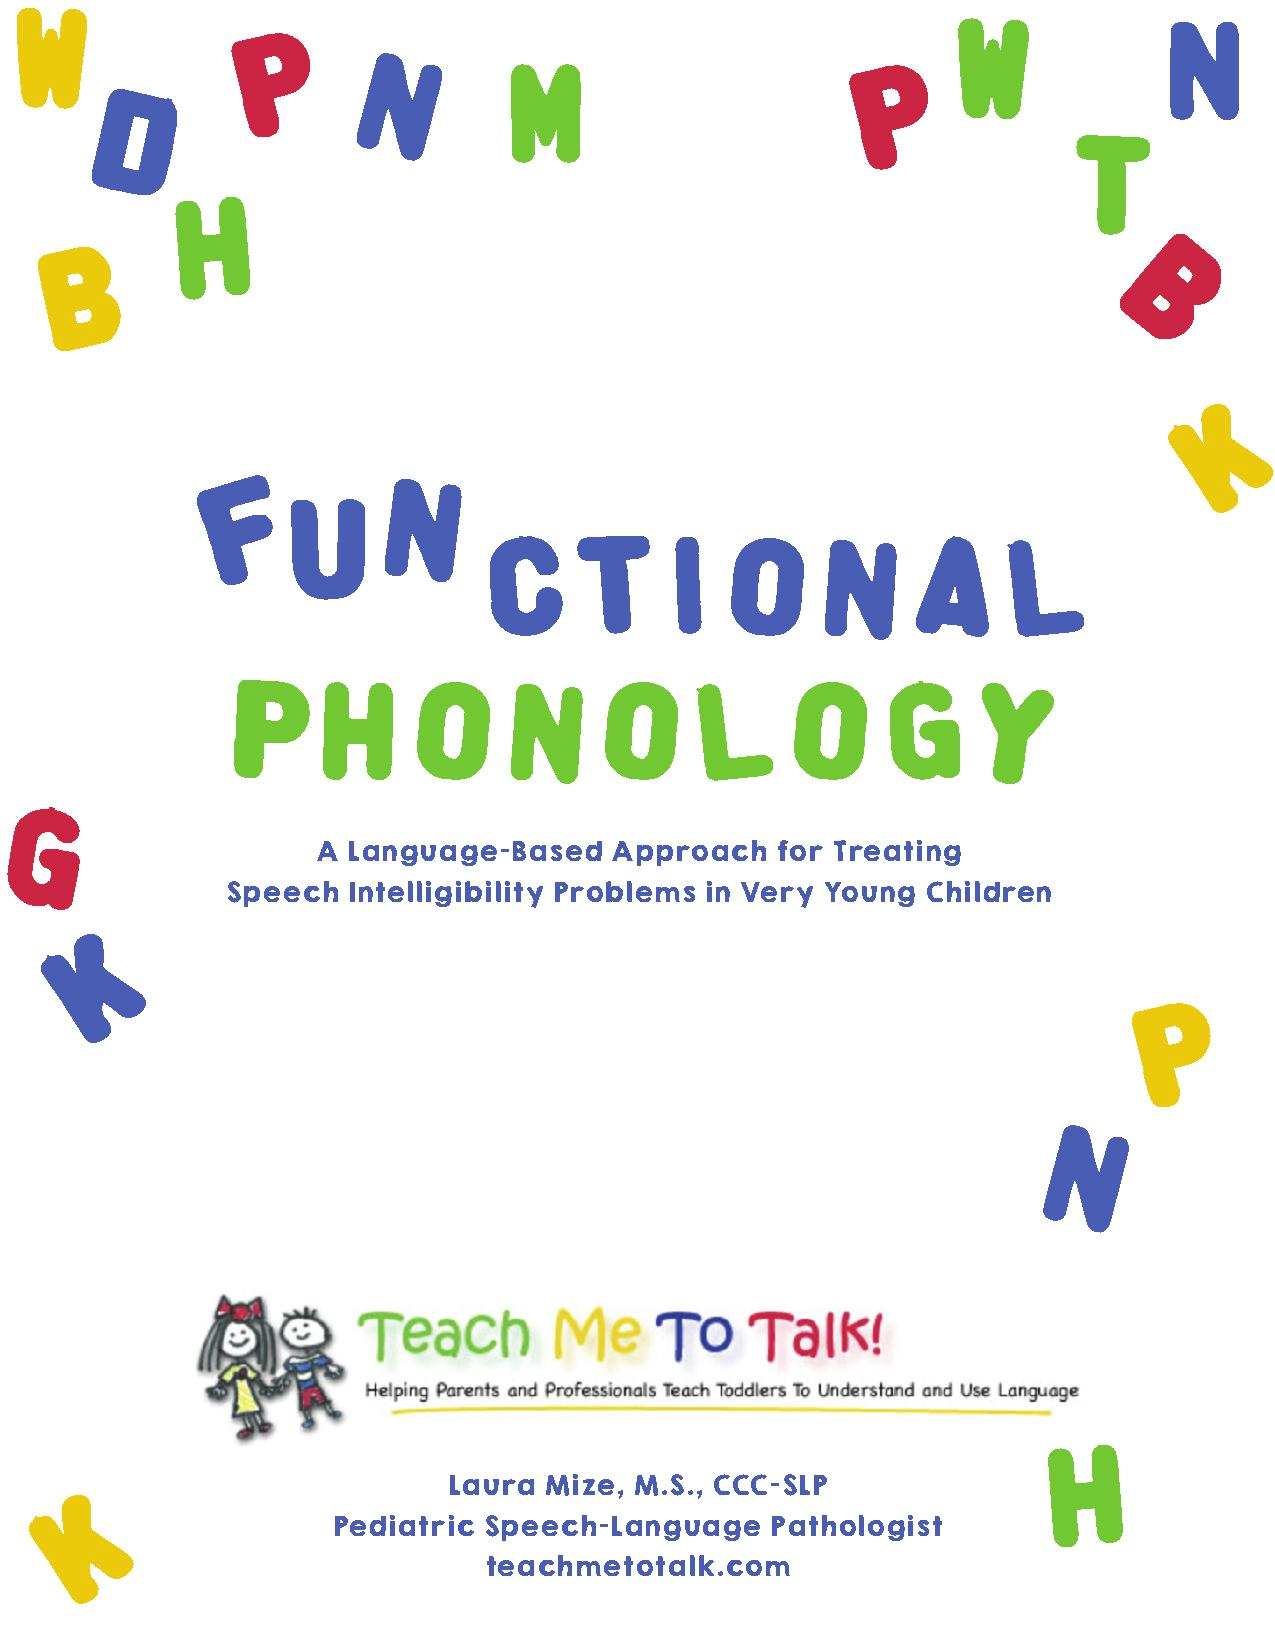 Functional-Phonology-Cover_1.jpg